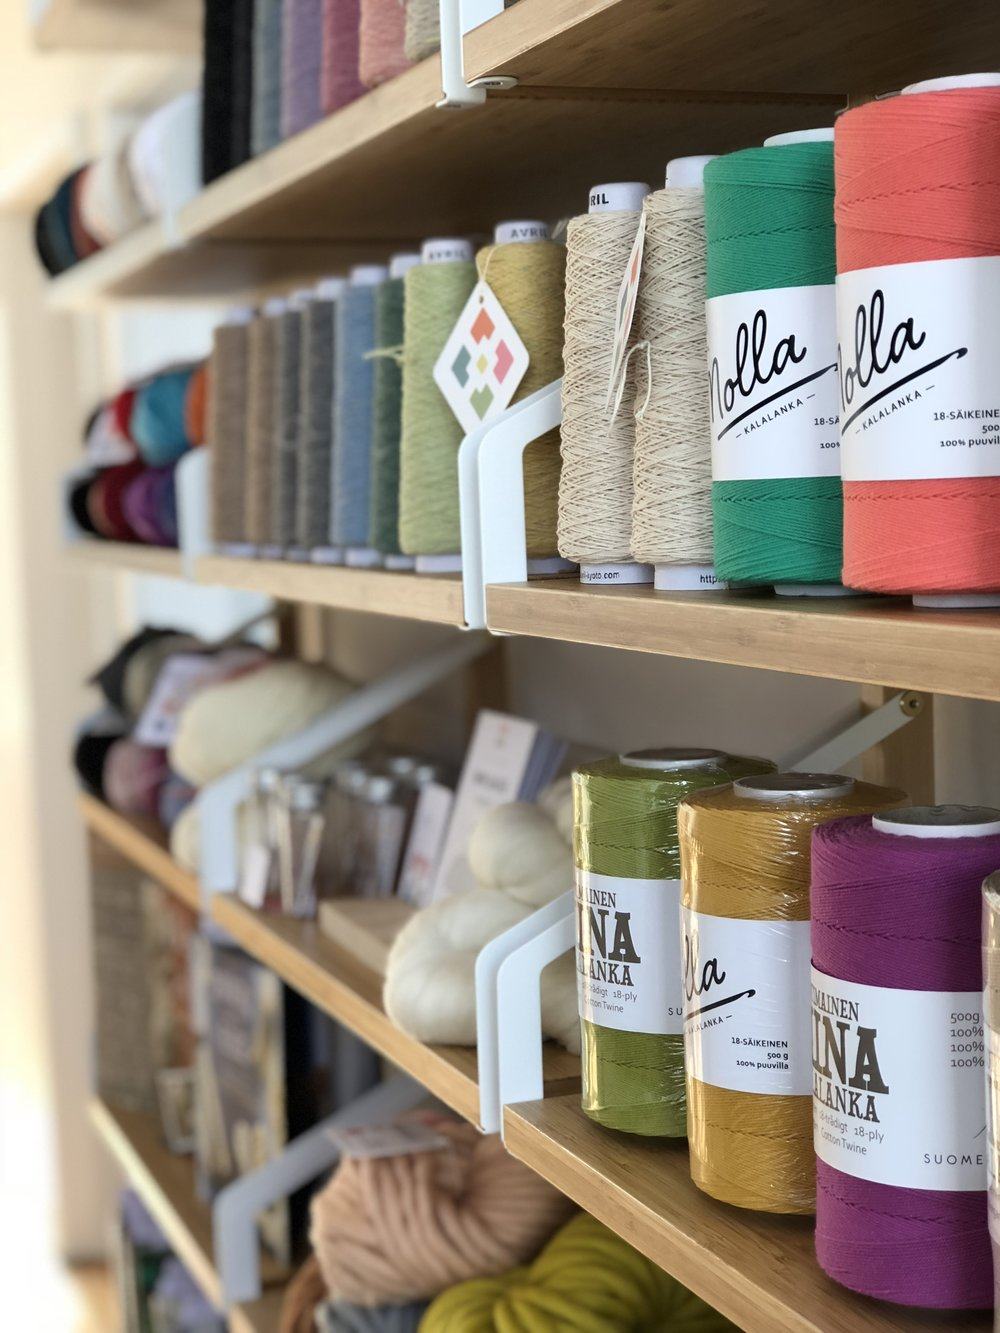 In 2018, Loom & Spindle moved out of home and into their first studio shop space! This light-filled hideaway in Melbourne's south-east offers a tranquil setting for learning and crafting. Come in to experience our range of craft tools, fibre and yarn. Stay to practice your craft and workshop your projects. - LOCATEDFirst Floor, 16 Station St, Frankston VIC 3199REGULAR HOURSSunday, 10am to 2pm*The studio will be closed to visitors over the Christmas break. The last shop open day for 2018 will be Sunday 16th December. Sunday trading will begin again for 2019 on Sunday 13th Jan. The online shop will trade as normal during this time.